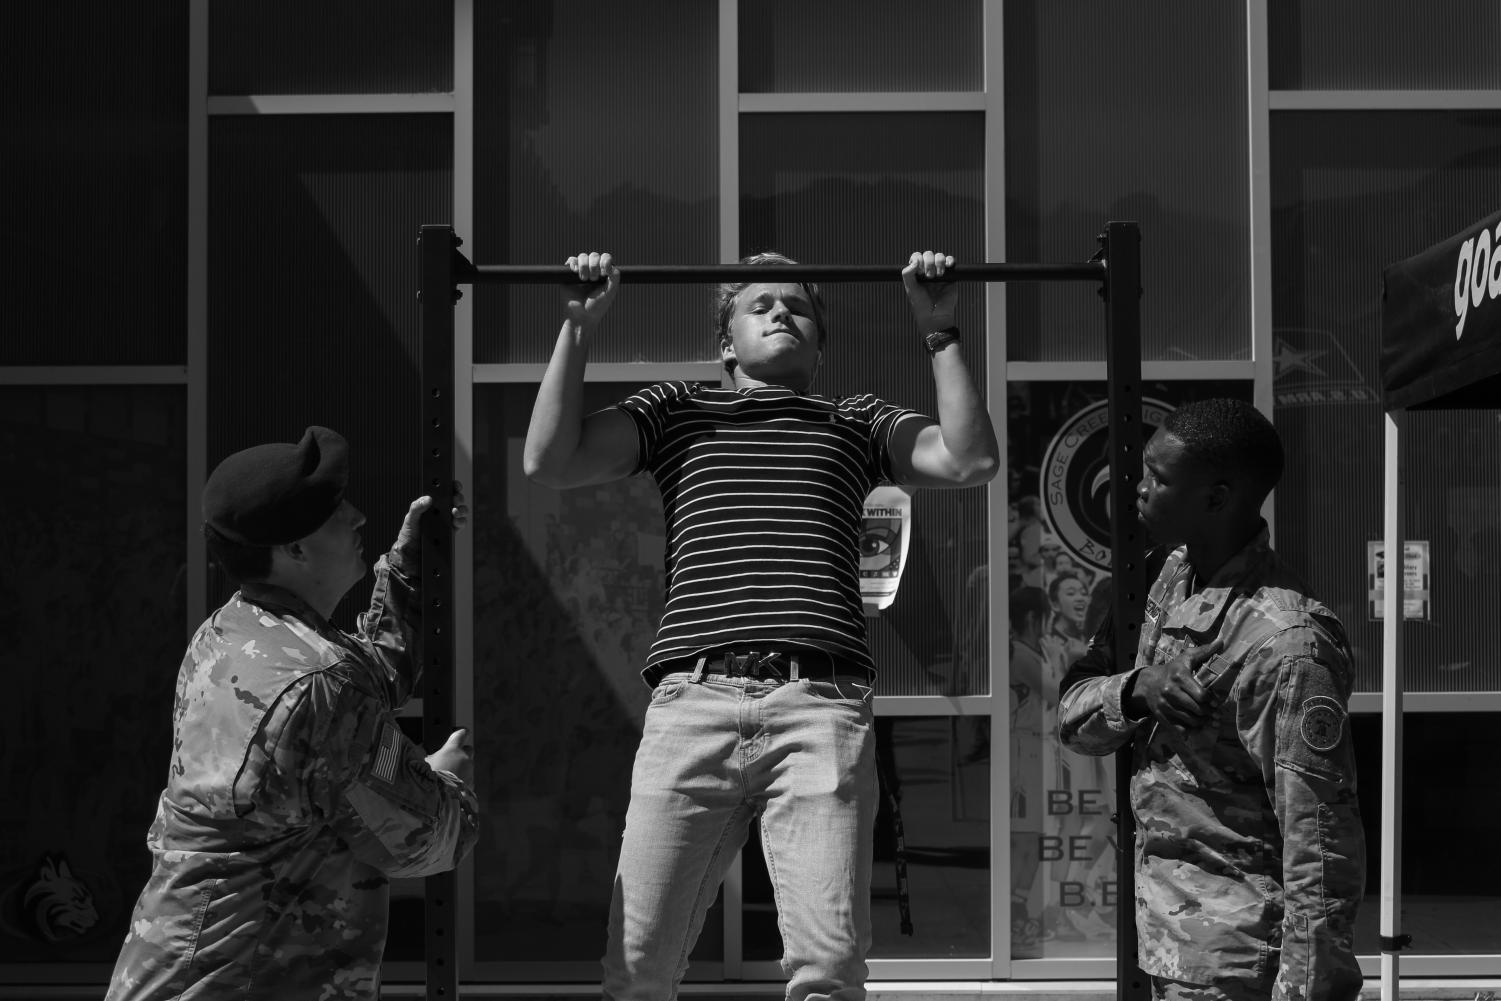 Senior+Jonah+Shoemaker+tests+his+strength+in+front+of+two+Army+soldiers+on+the+pull-up+bars.+Army+recruiters+visited+during+lunch+on+Wednesday%2C+Sept.+18.